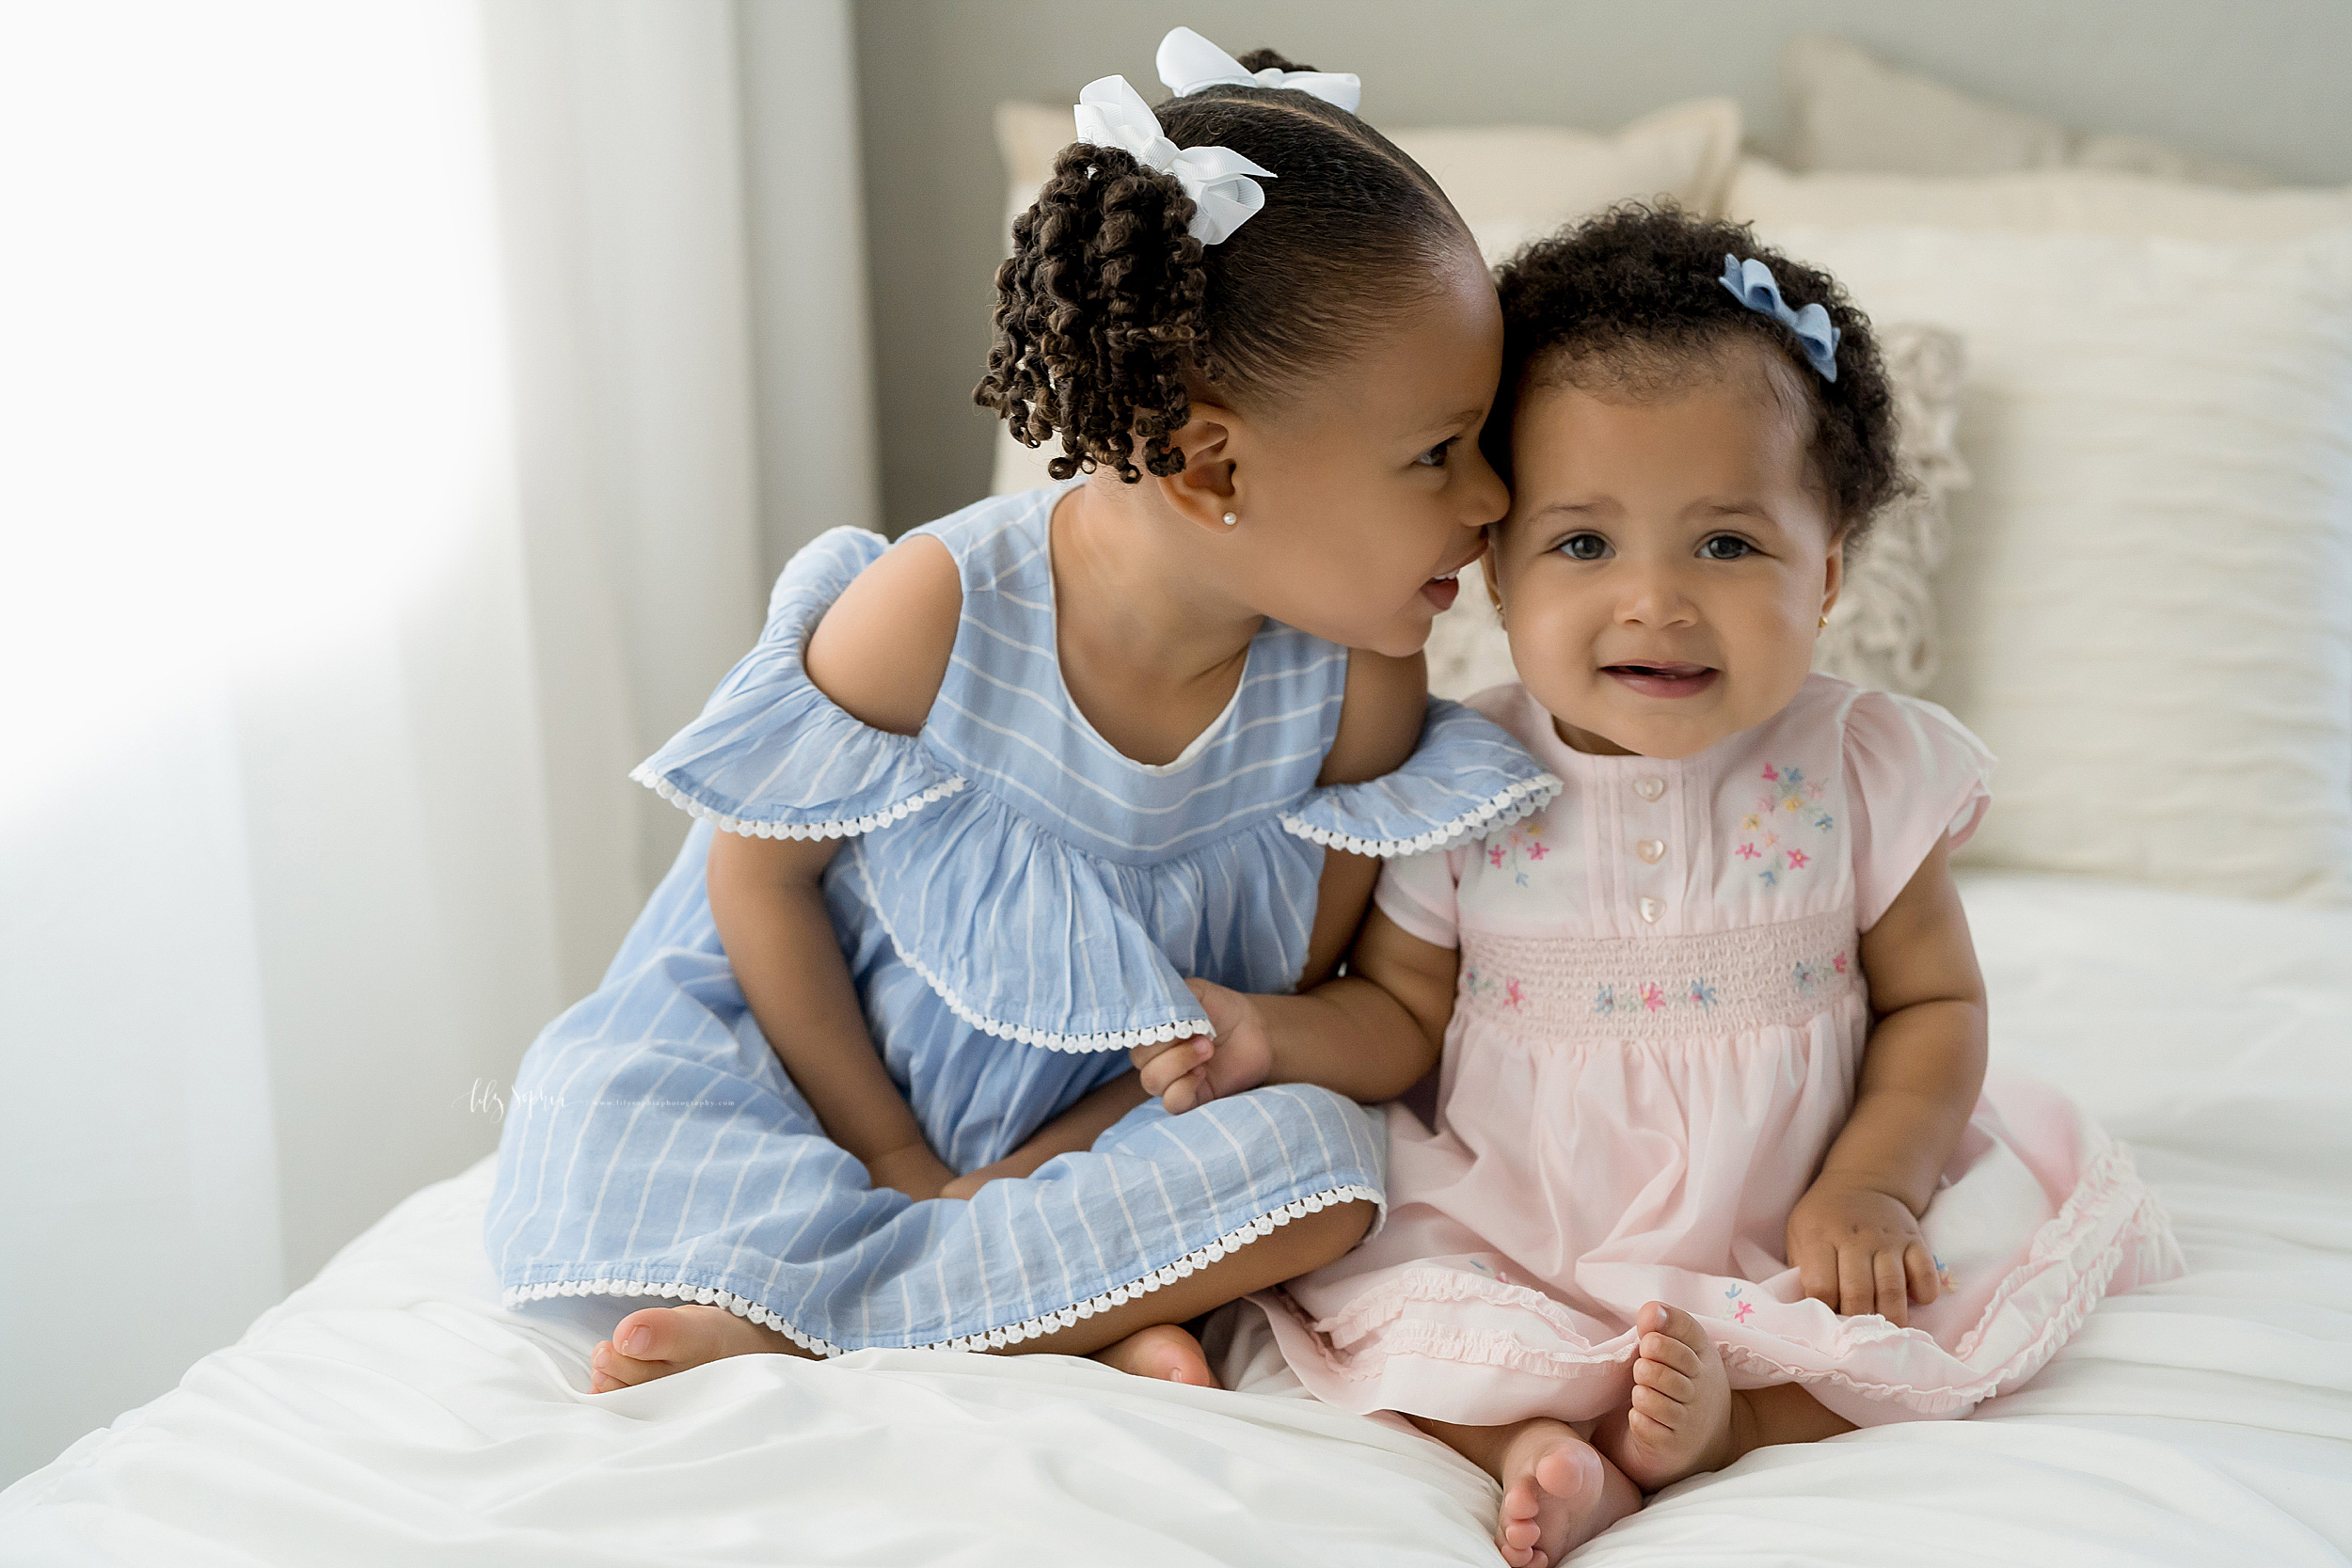 Photograph of two African-American sisters sitting on a bed in front of a window. The older sister is whispering something in her younger sister's ear while the younger sister smiles.  The toddler is wearing a blue and white striped cold shoulder dress and white bows in her hair around her pigtails.  The baby is wearing a delicate pink smocked dress with blue and pink embroidered flowers and translucent buttons down the center and a blue bow on the left side of her head.